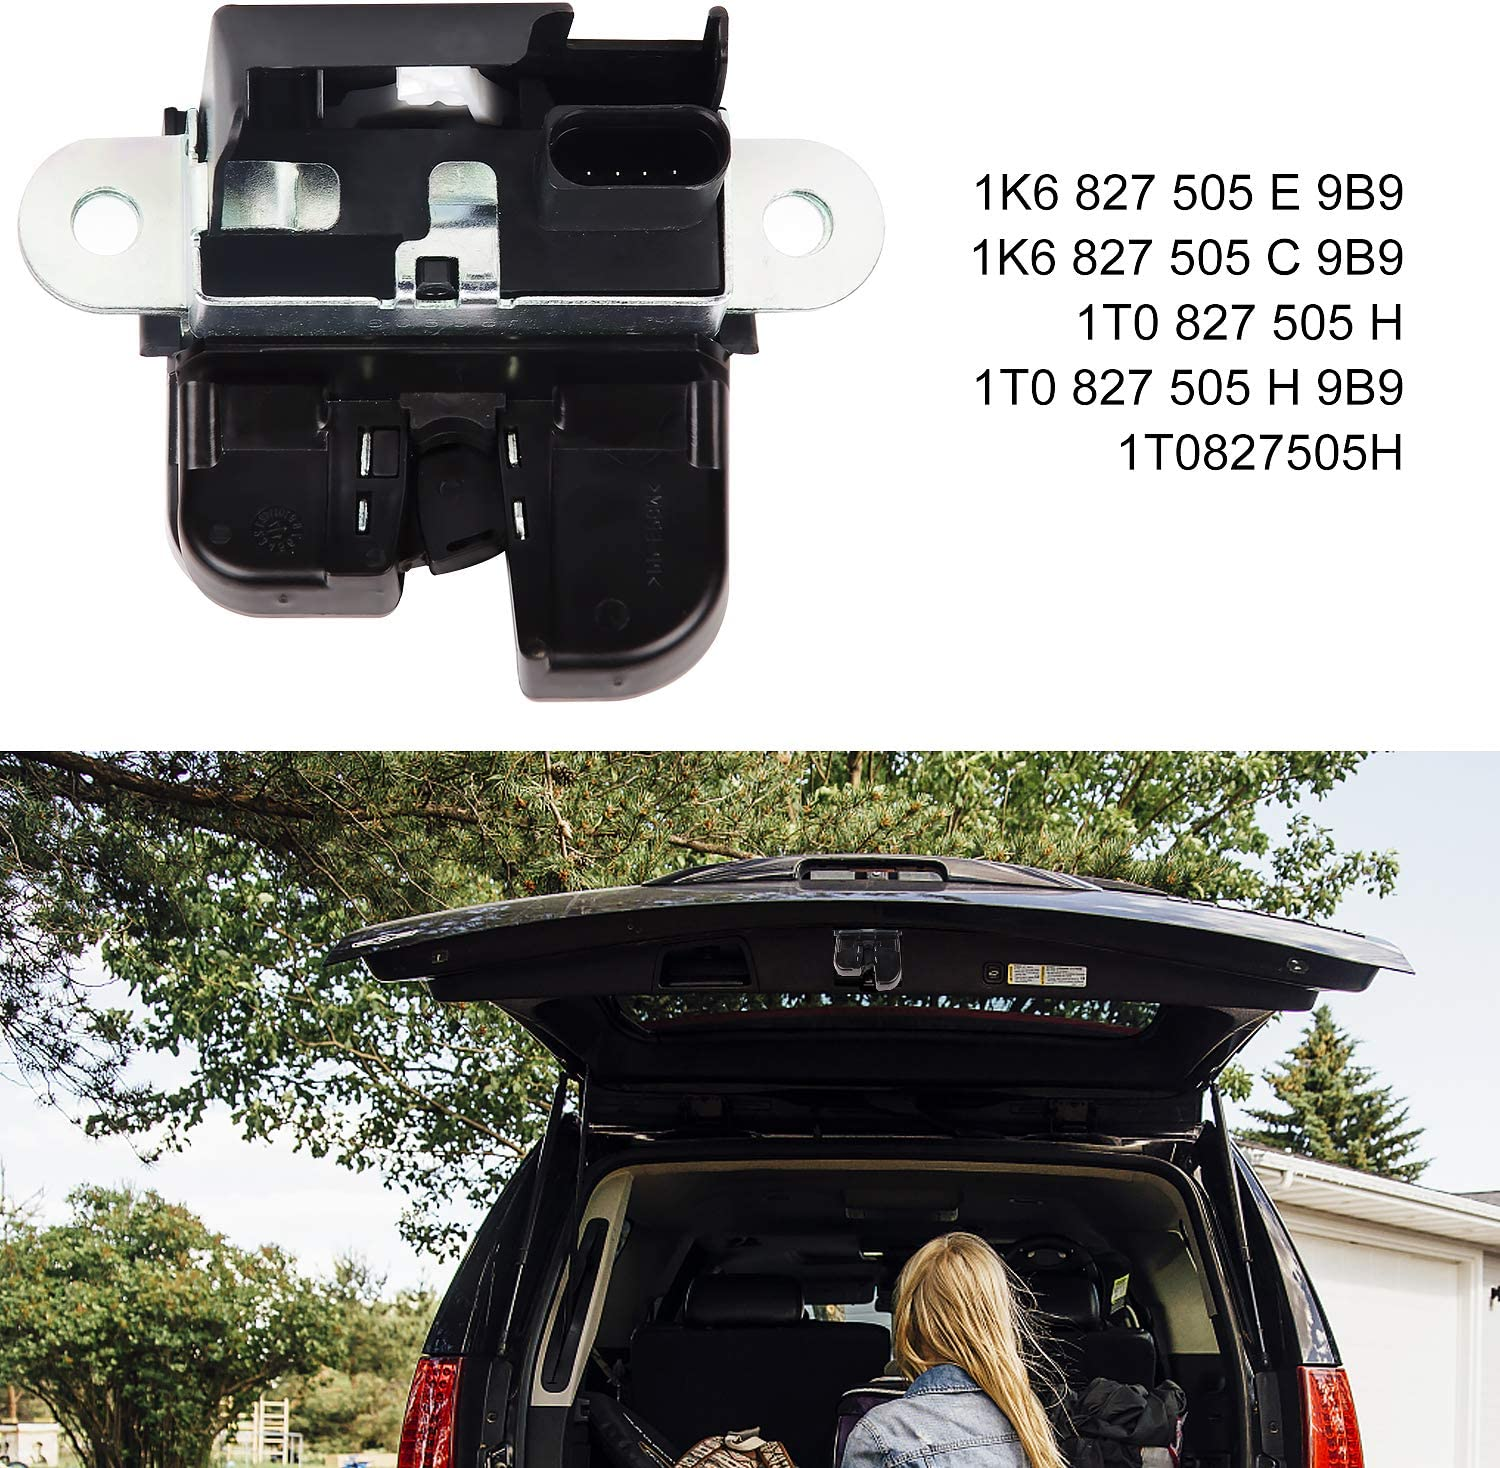 EXLECO Car Tailgate Lock Boot Tailgate Lock for Tailgate Lock Golf//Touran//Passat Vehicle 5K0827505A 1K6827505E